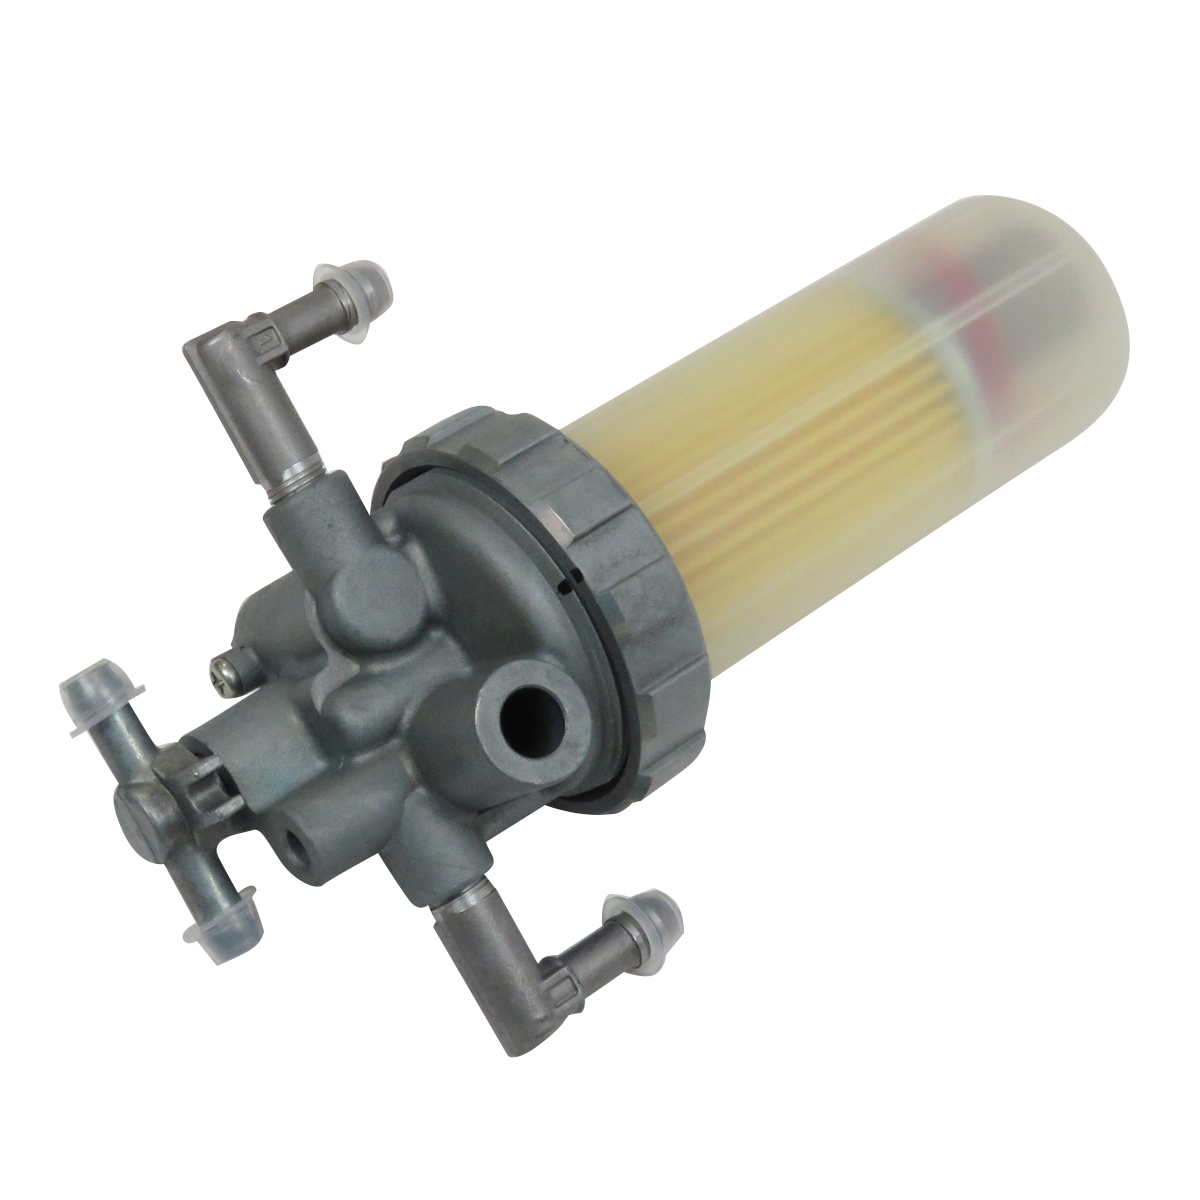 Fuel Filter Assembly for X700 Series